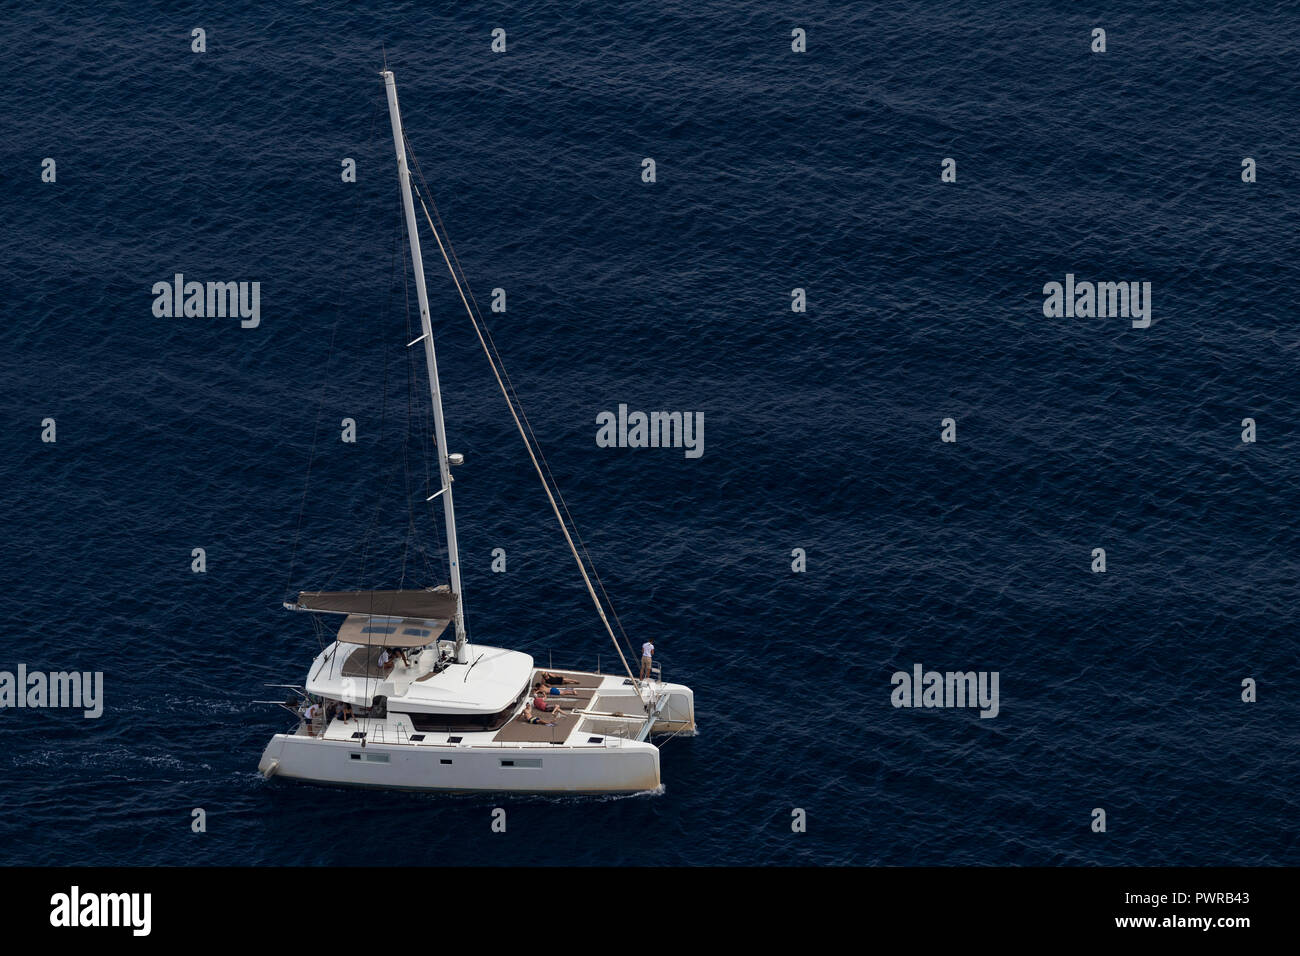 Luxury catamaran yacht sails in the Aegean sea, Greece, August 2018, aerial view. - Stock Image